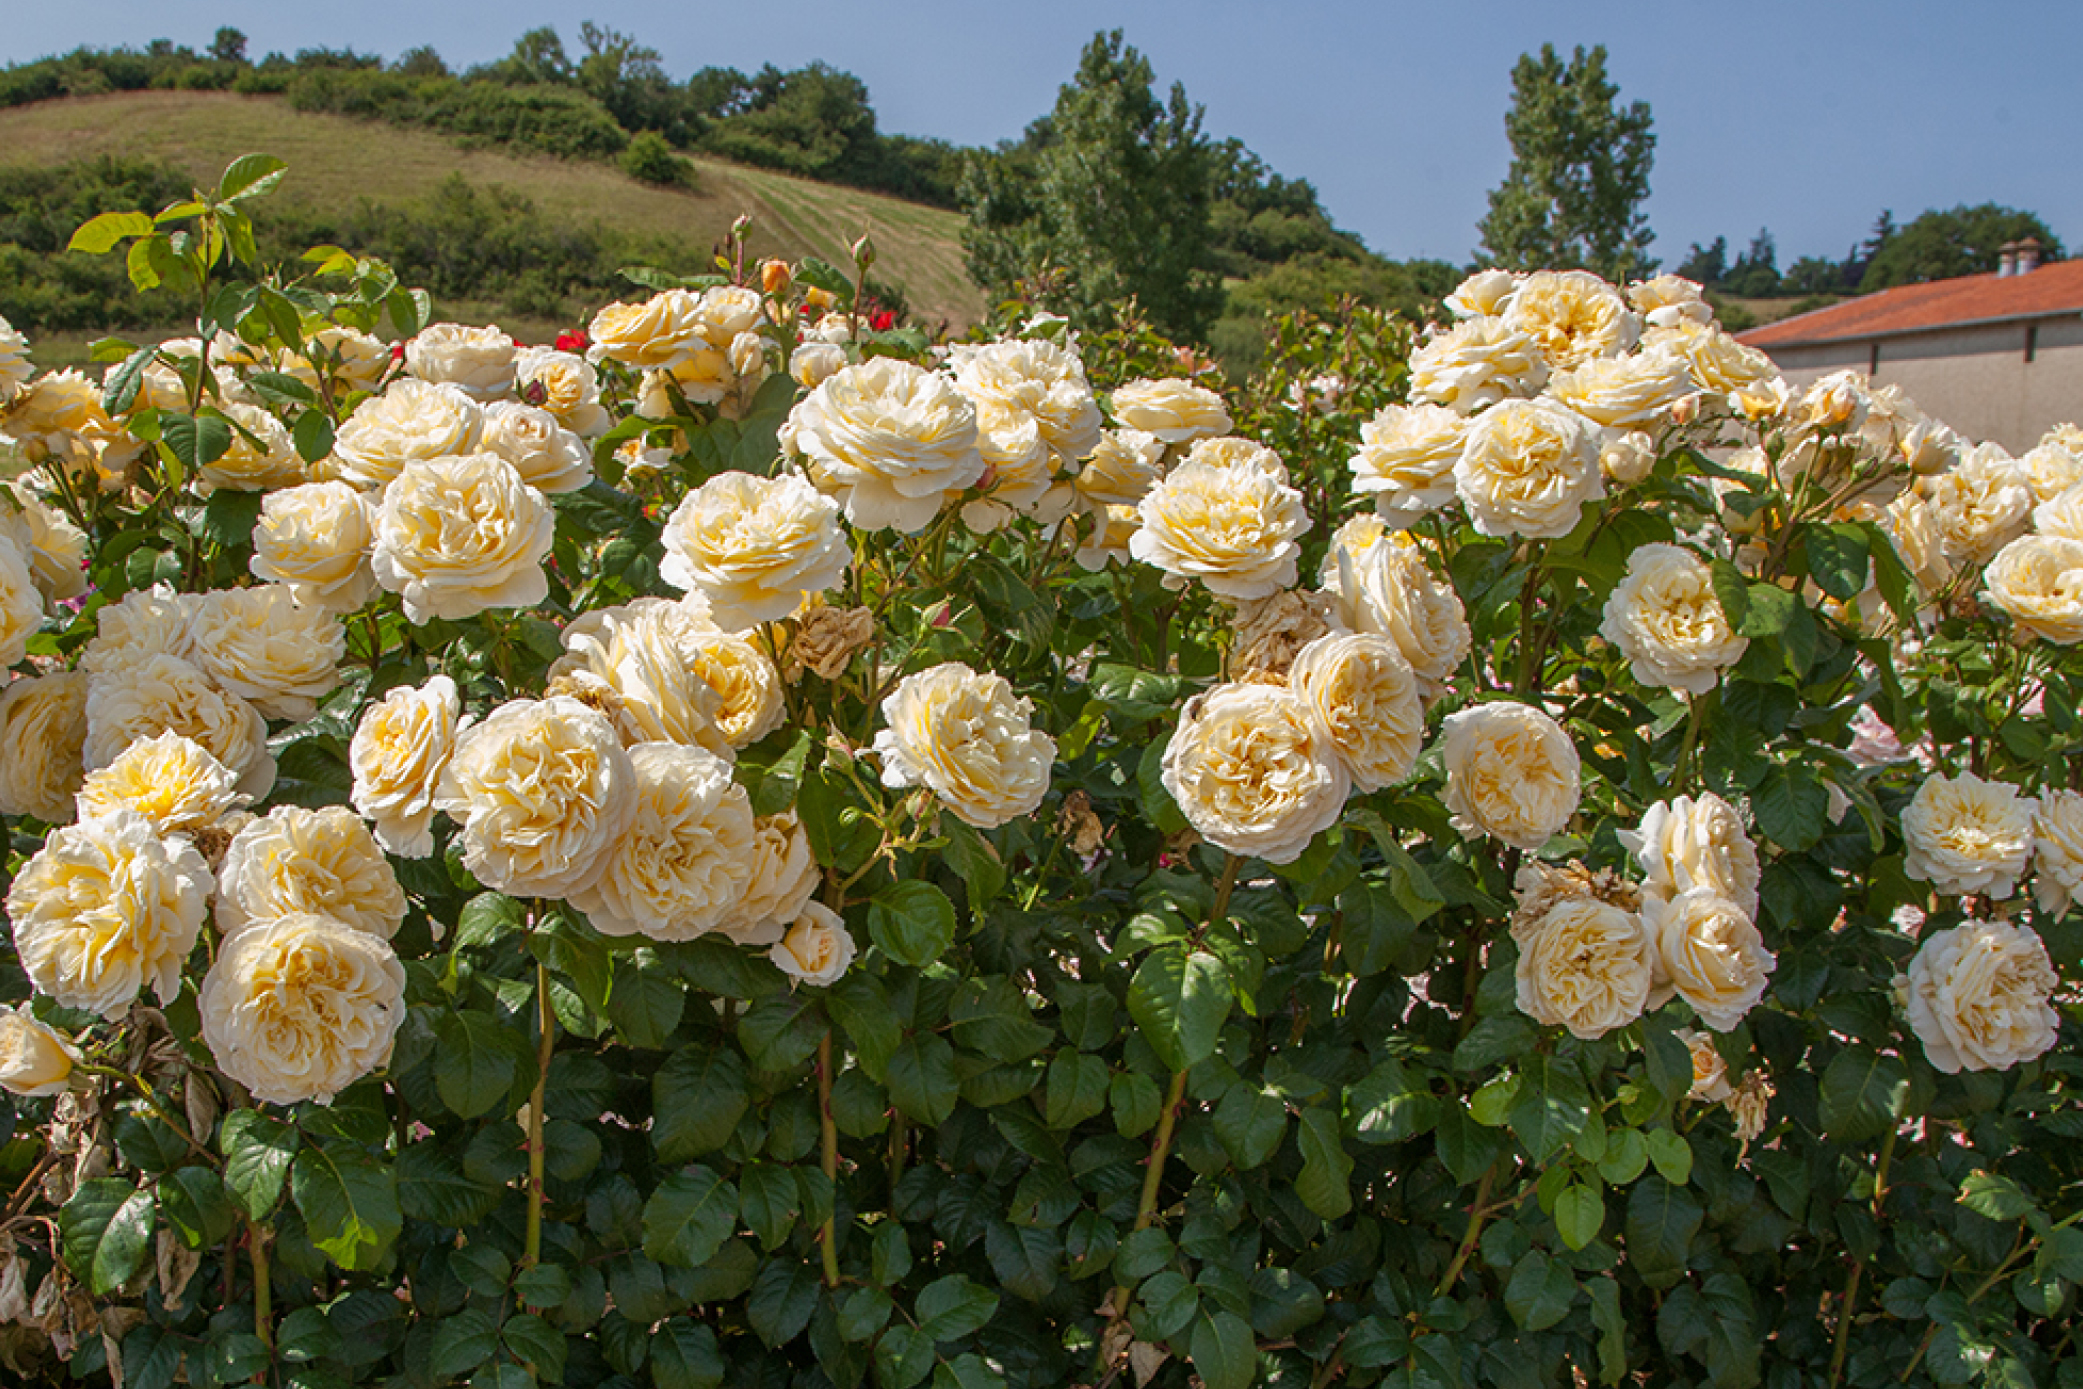 Moonlight Romantica® offers light yellow flowers that are extremely fragrant.